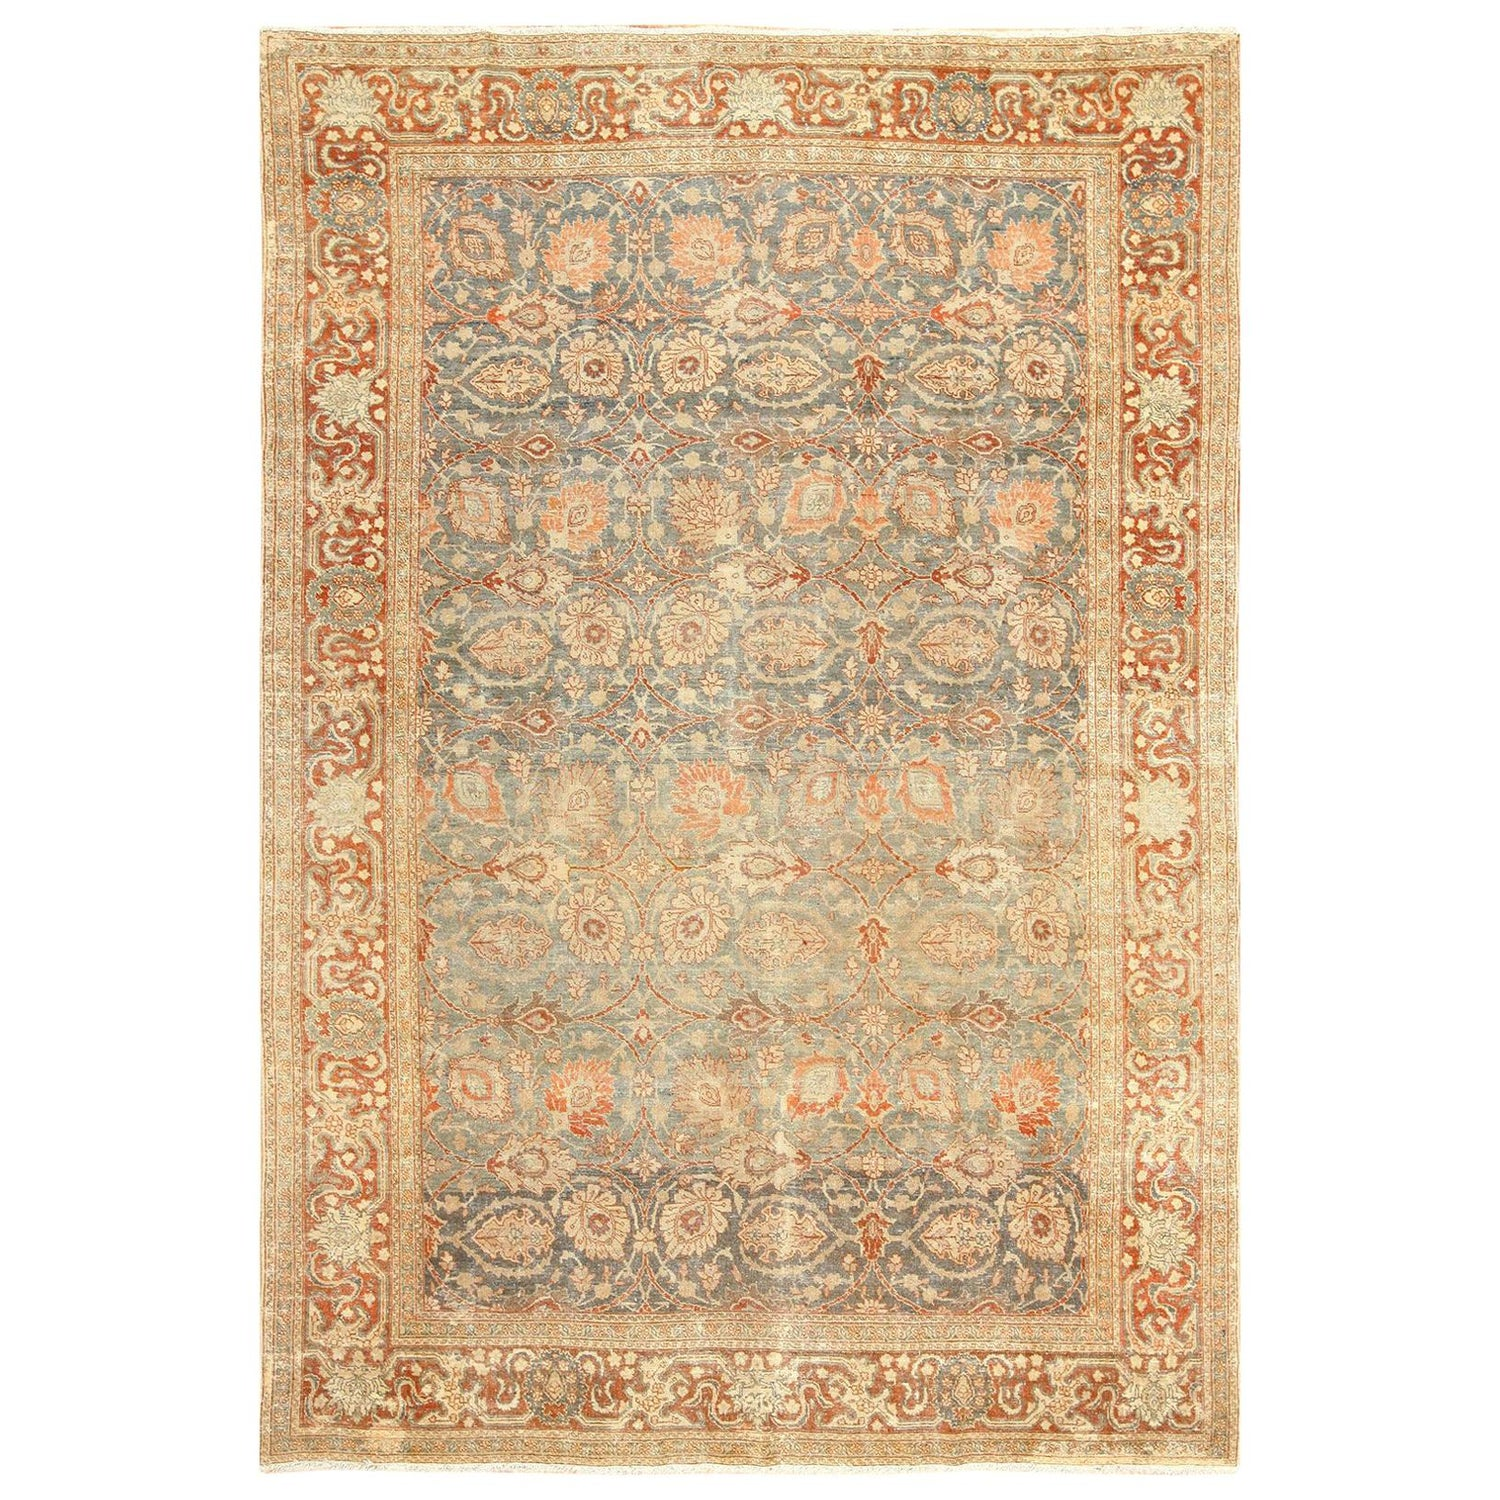 Antique Persian Tabriz Rug. Size 10 ft x 10 ft 10 in 10.10 m x 10.10 m